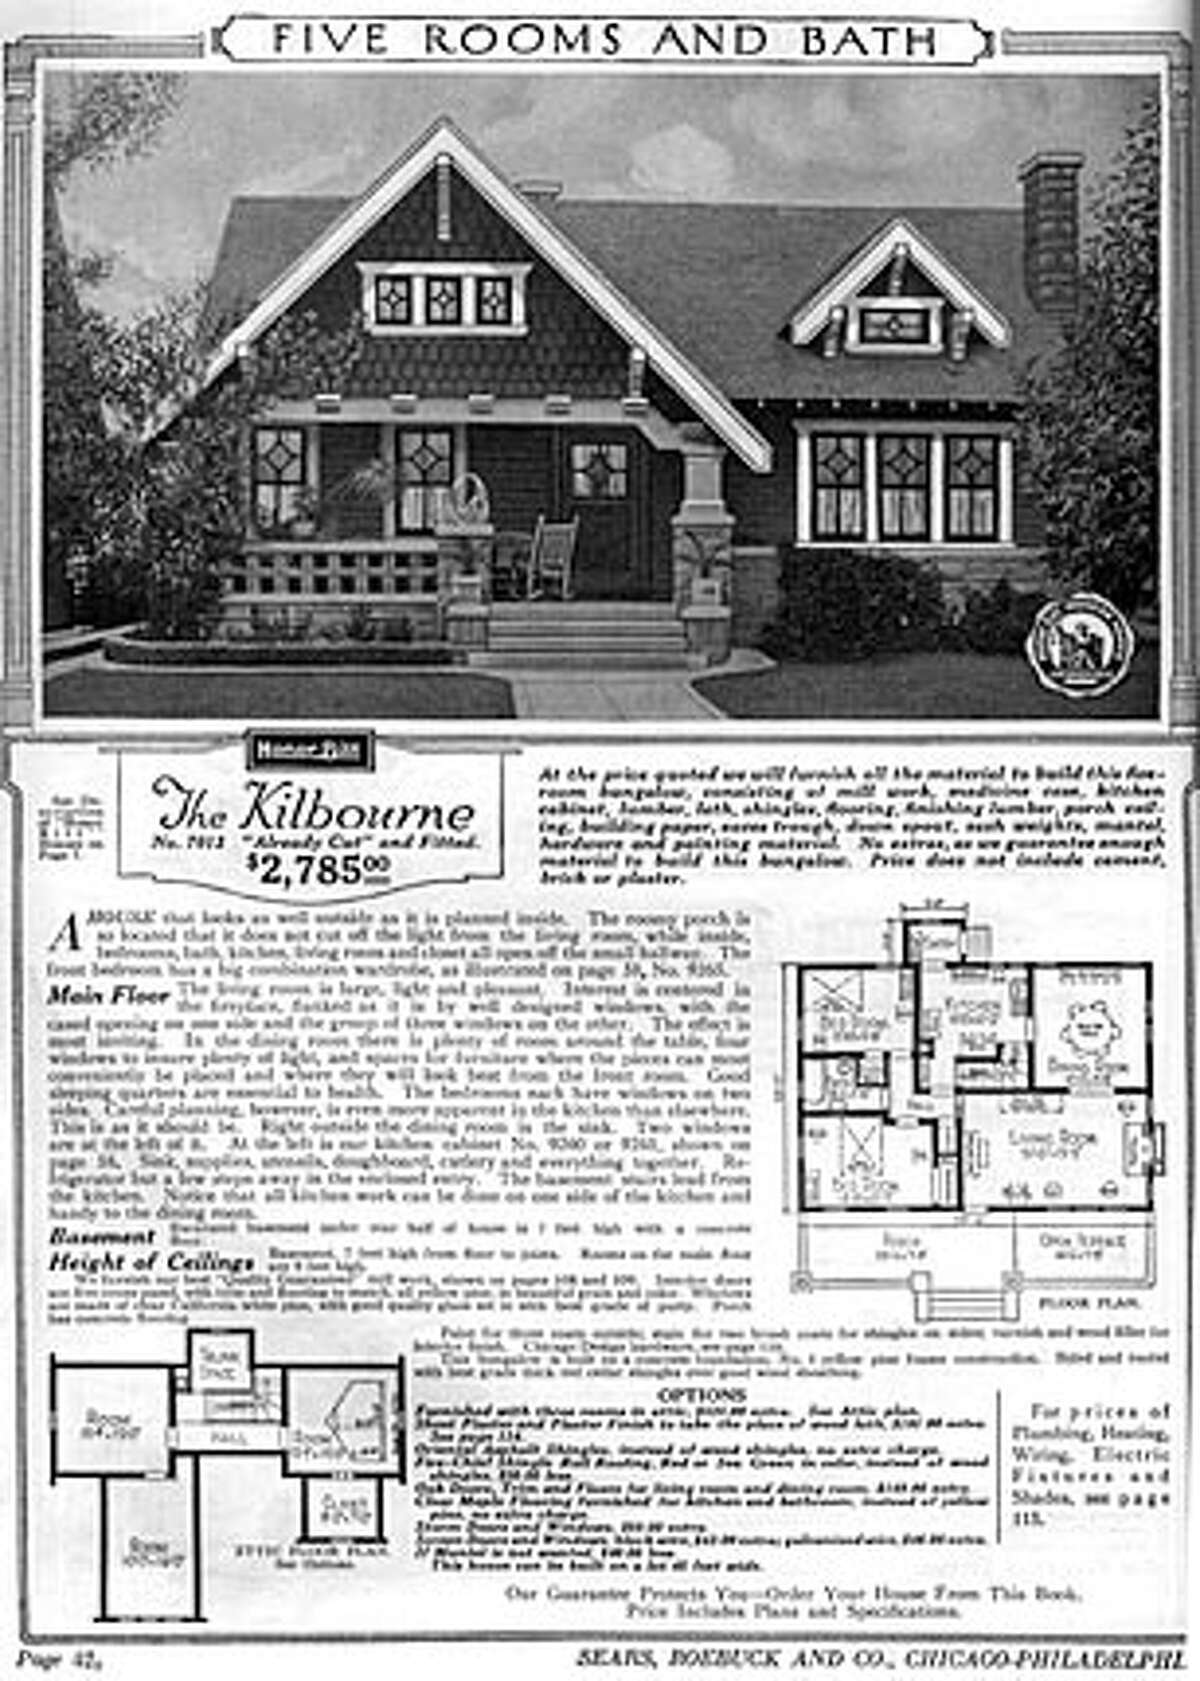 A copy of the 1921 Sears catalog ad. Emile Oxsen of Pleasanton, who has made a living selling real estate for the past 30 years, is not a man enamoured of modern architecture. So when it came time to build a home for himself, he and his wife, Marjorie, chose a design for a relatively small, (1,200 square-foot) bungalow-style home featured in a 1921 Sears catalog.